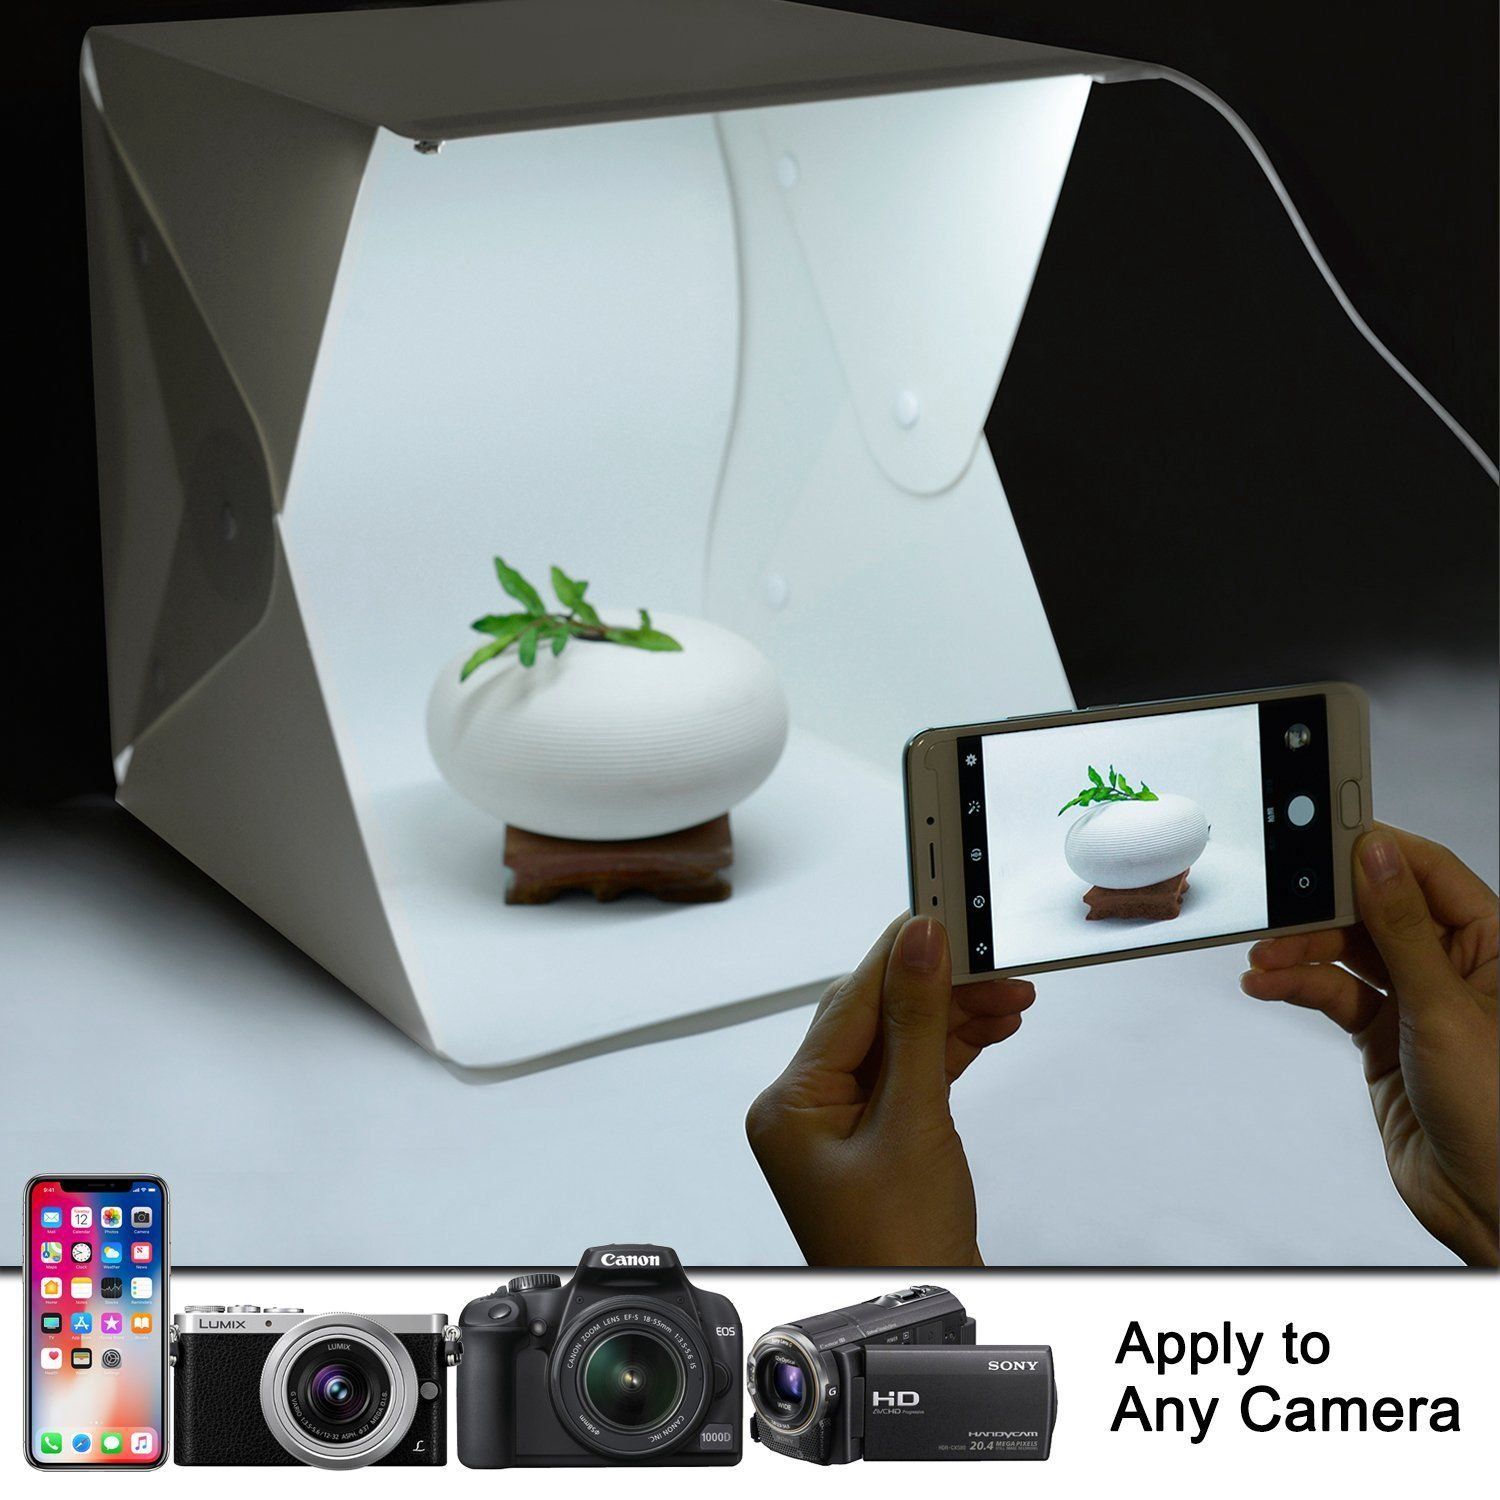 Nrpfell Upgraded Version Portable Photography Studio,Mini Portable and Folding Photo Light Box Studio Photo Photography Tent Kit with LED Light and Background 9.5 x 9 x 9.8 inches